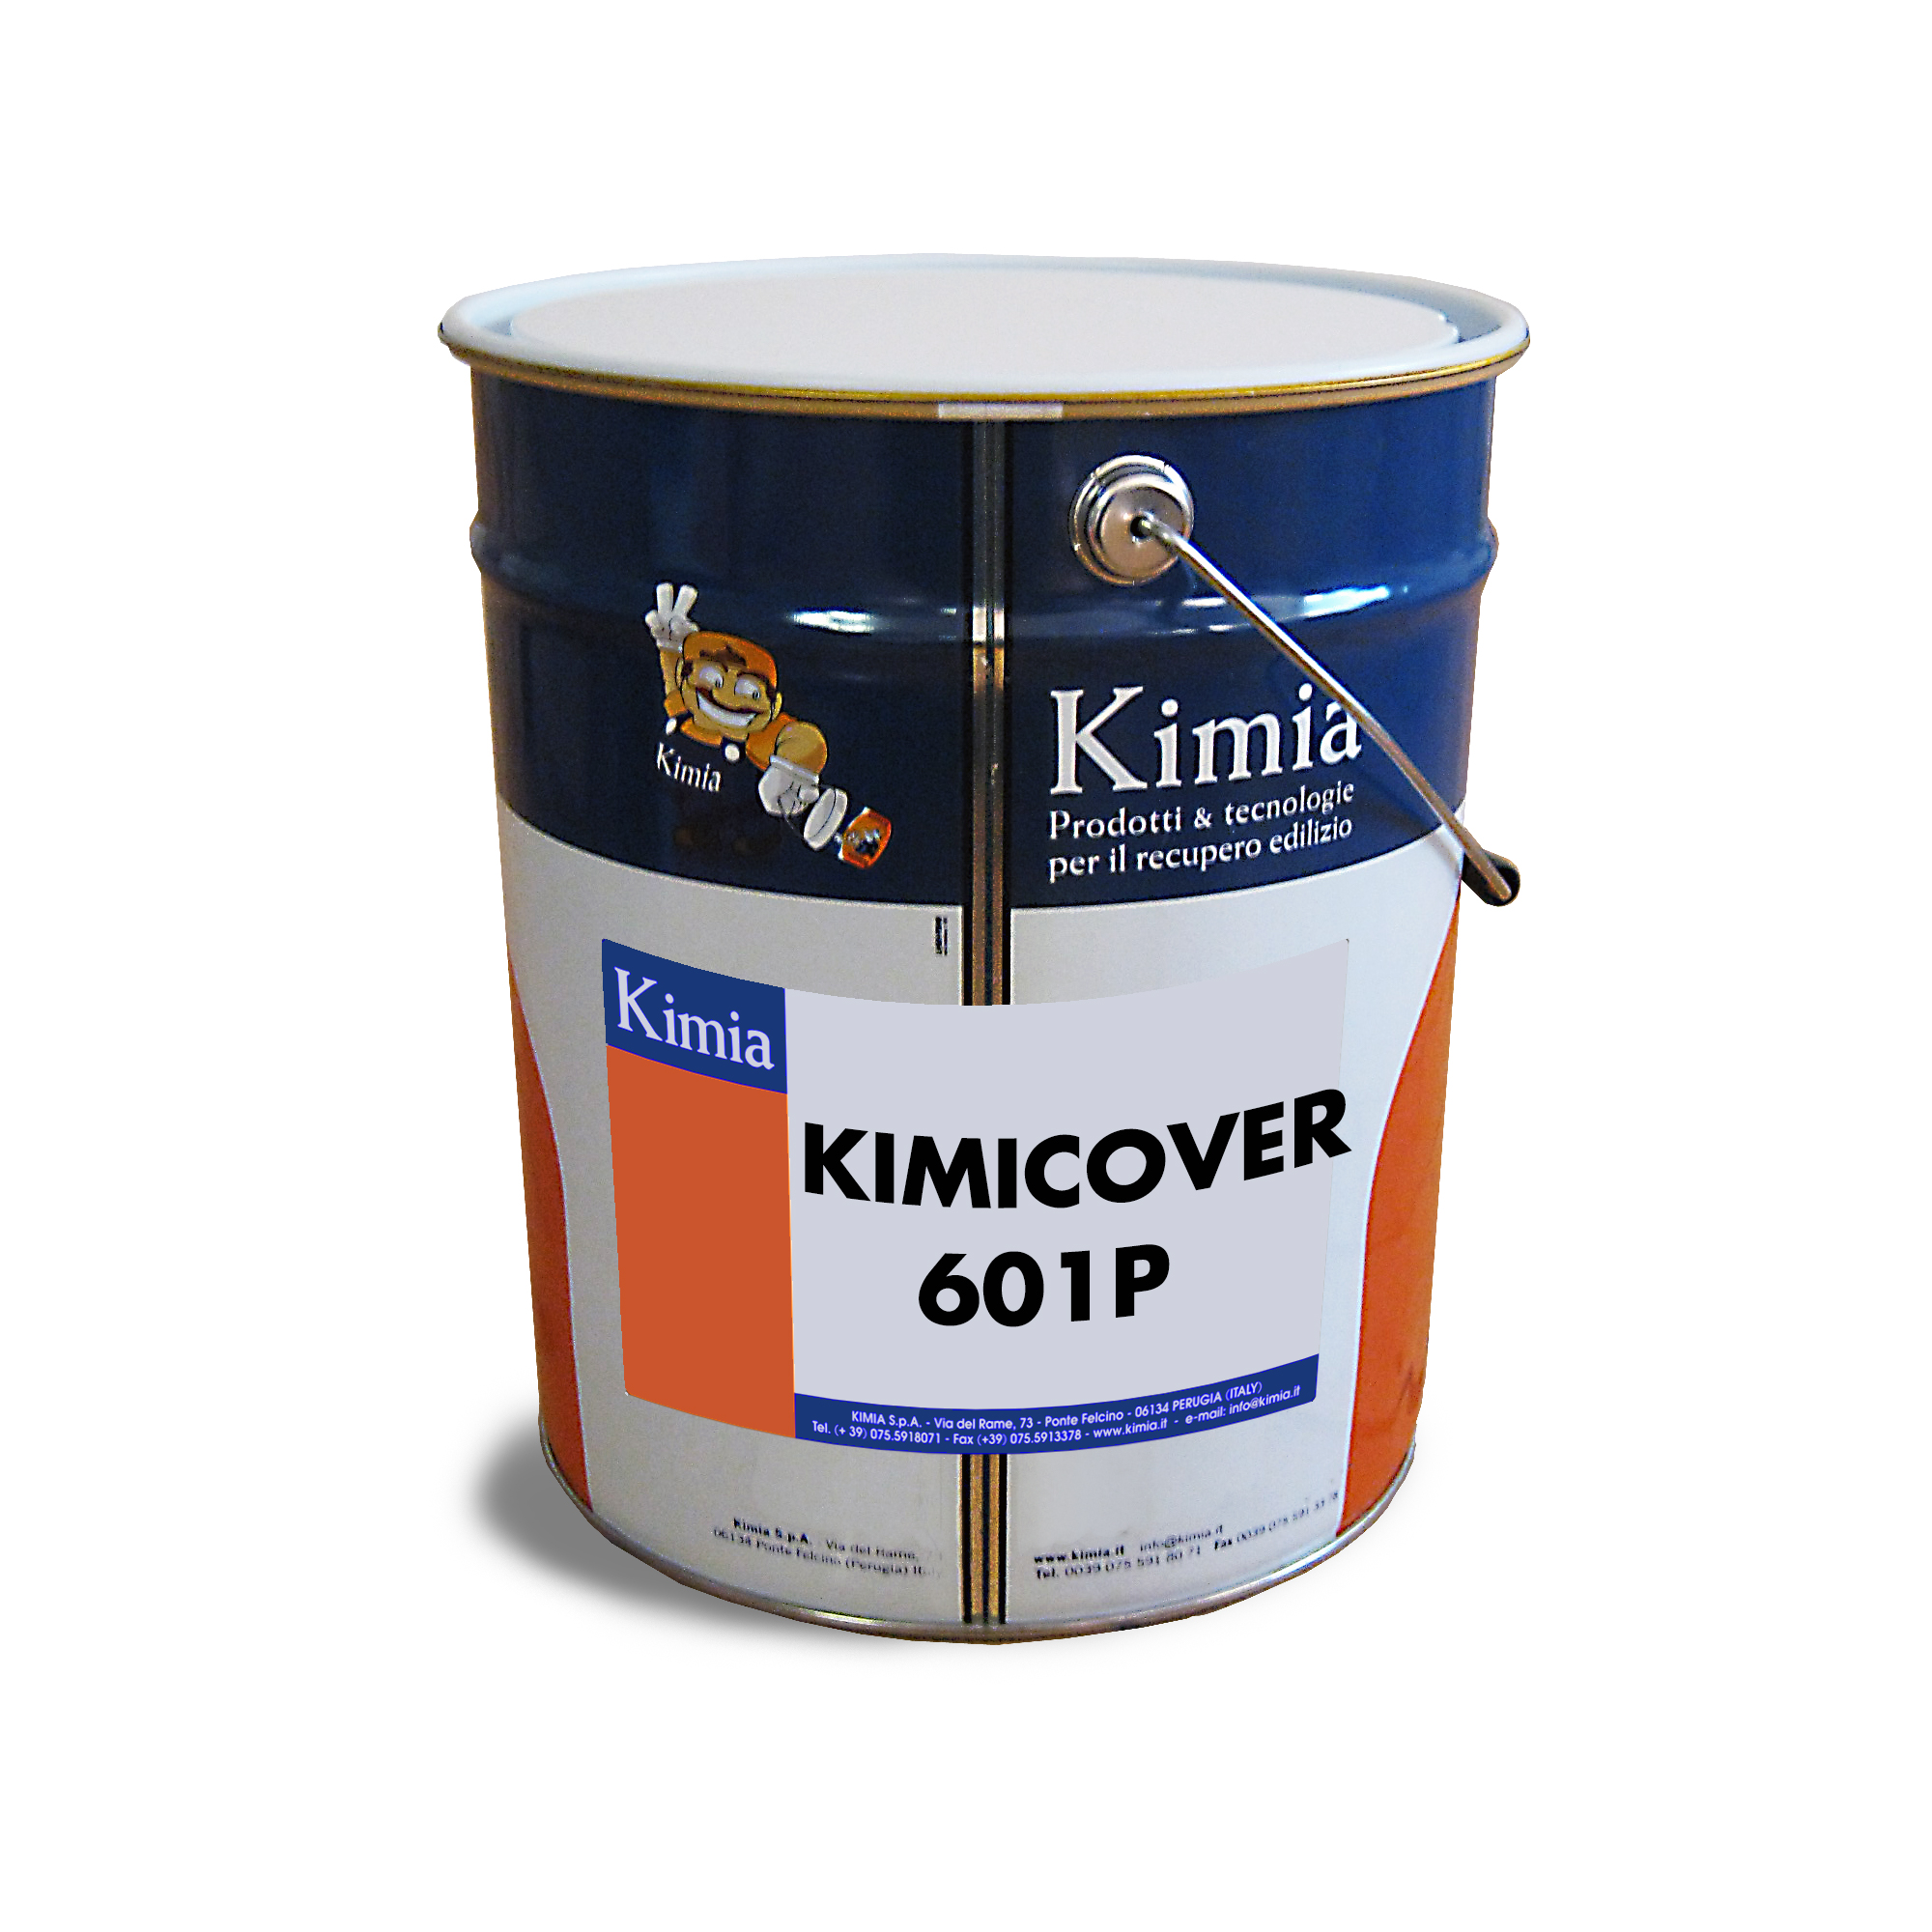 Kimicover 601P